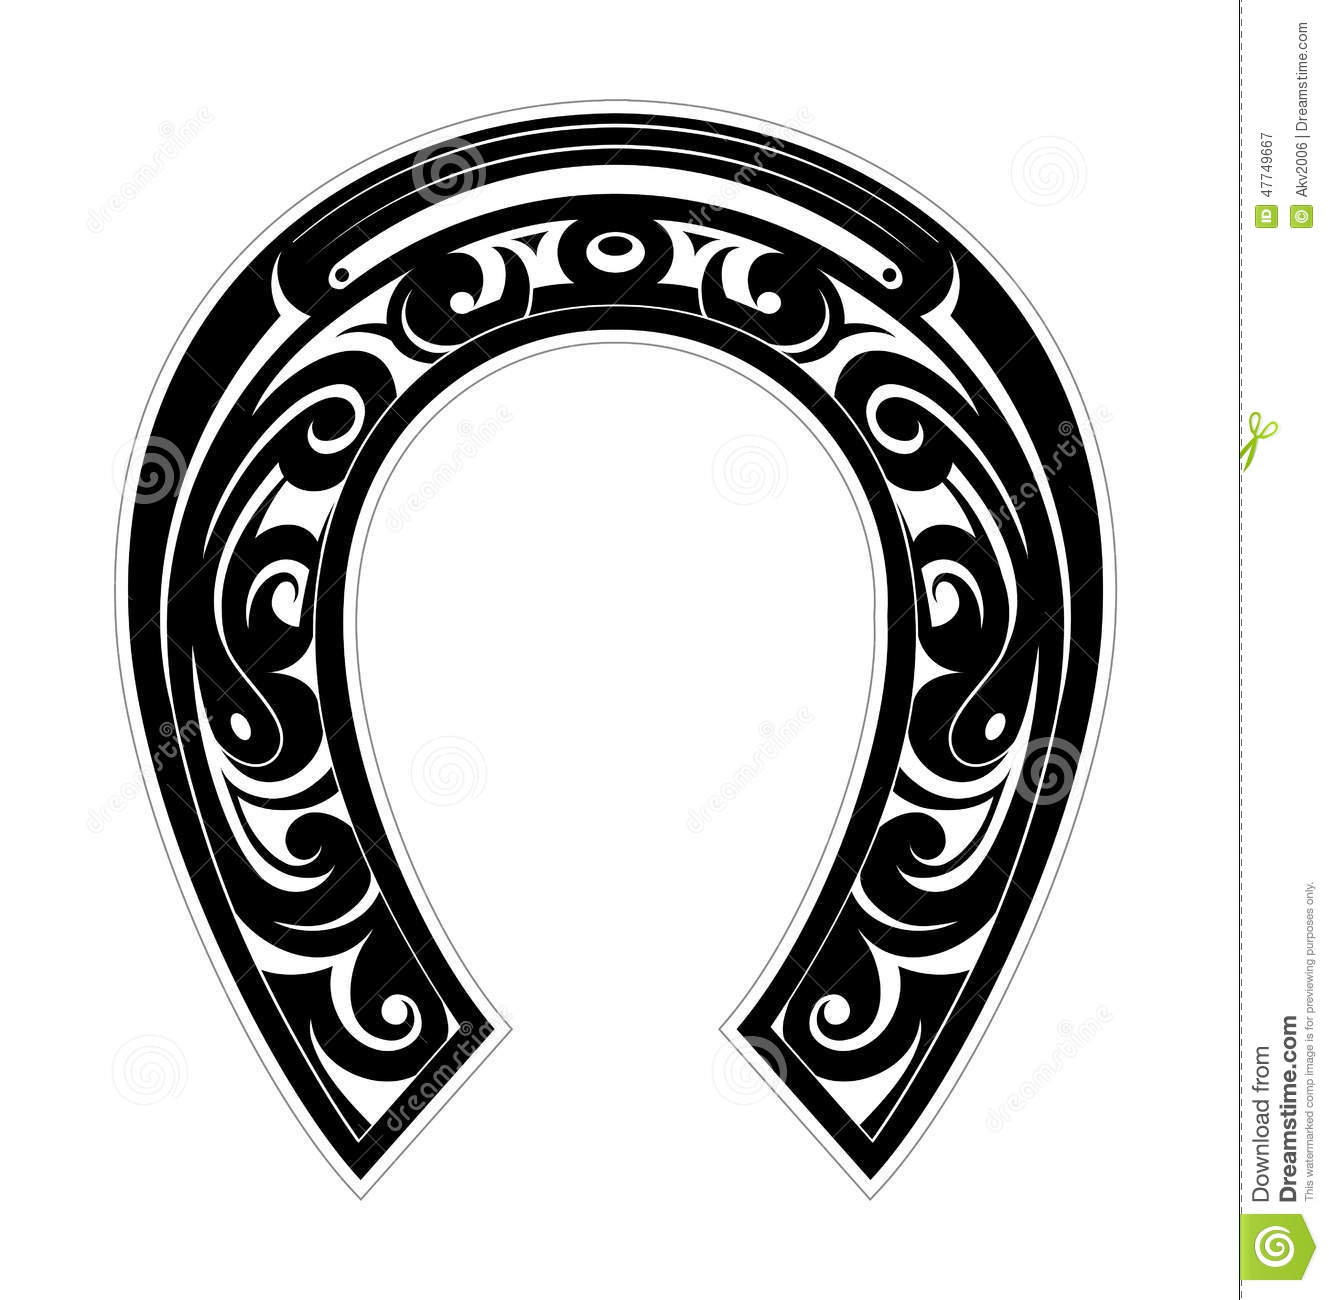 Horseshoe As Symbol Of Luck Stock Vector - Image: 47749667